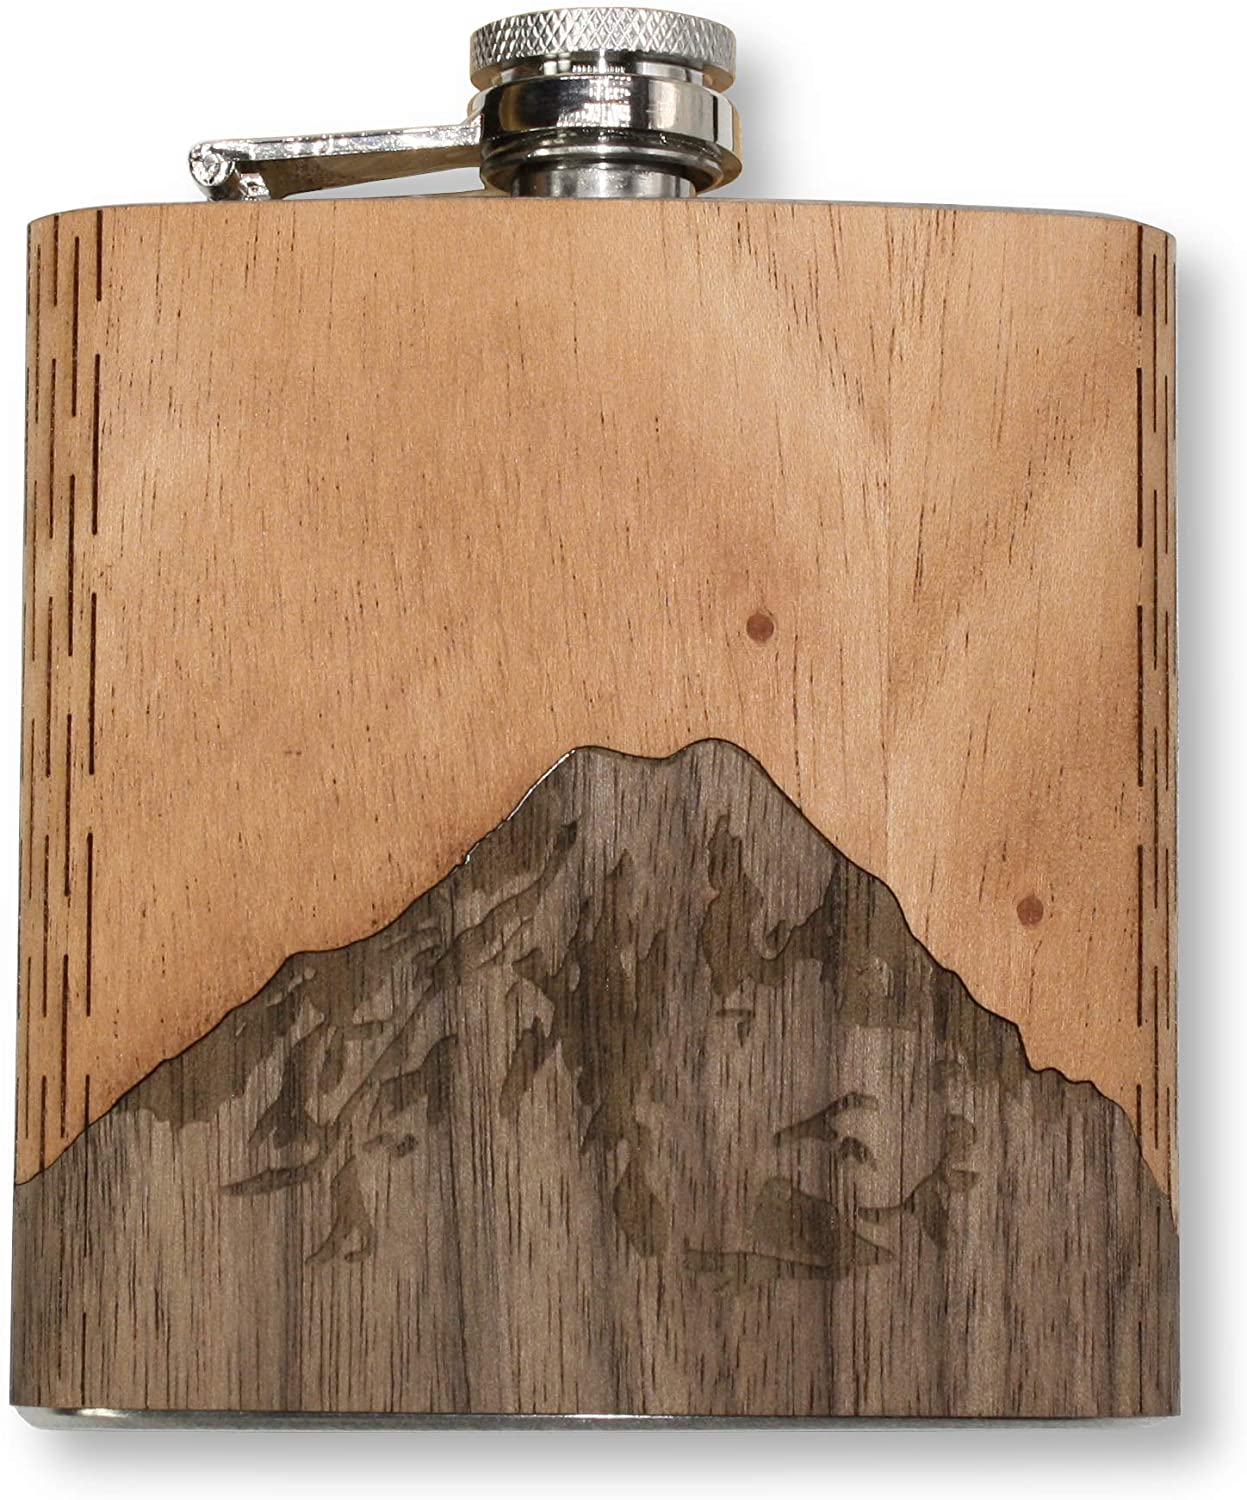 Wudn hip flask